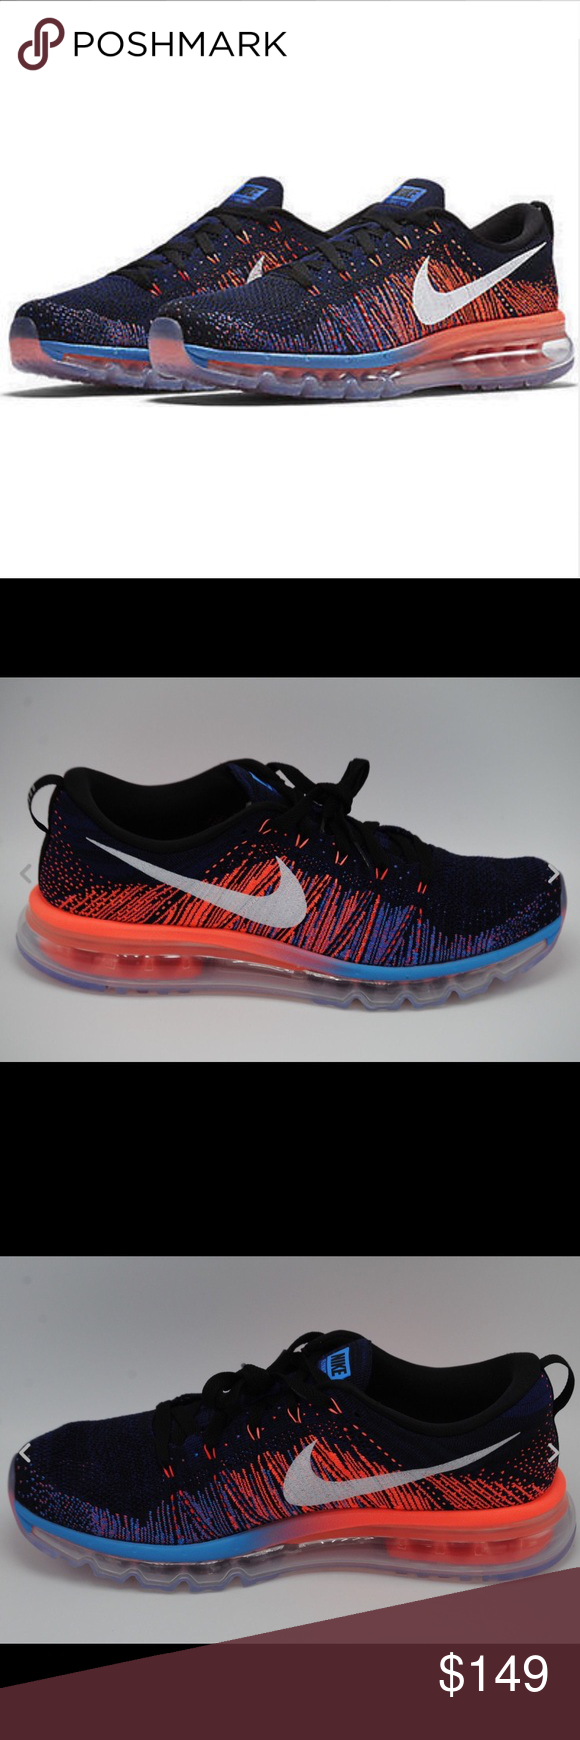 new concept 68f34 03b00 ... switzerland nike flyknit air max running mans shoes nike mens low top  sneaker lace up b0e1d